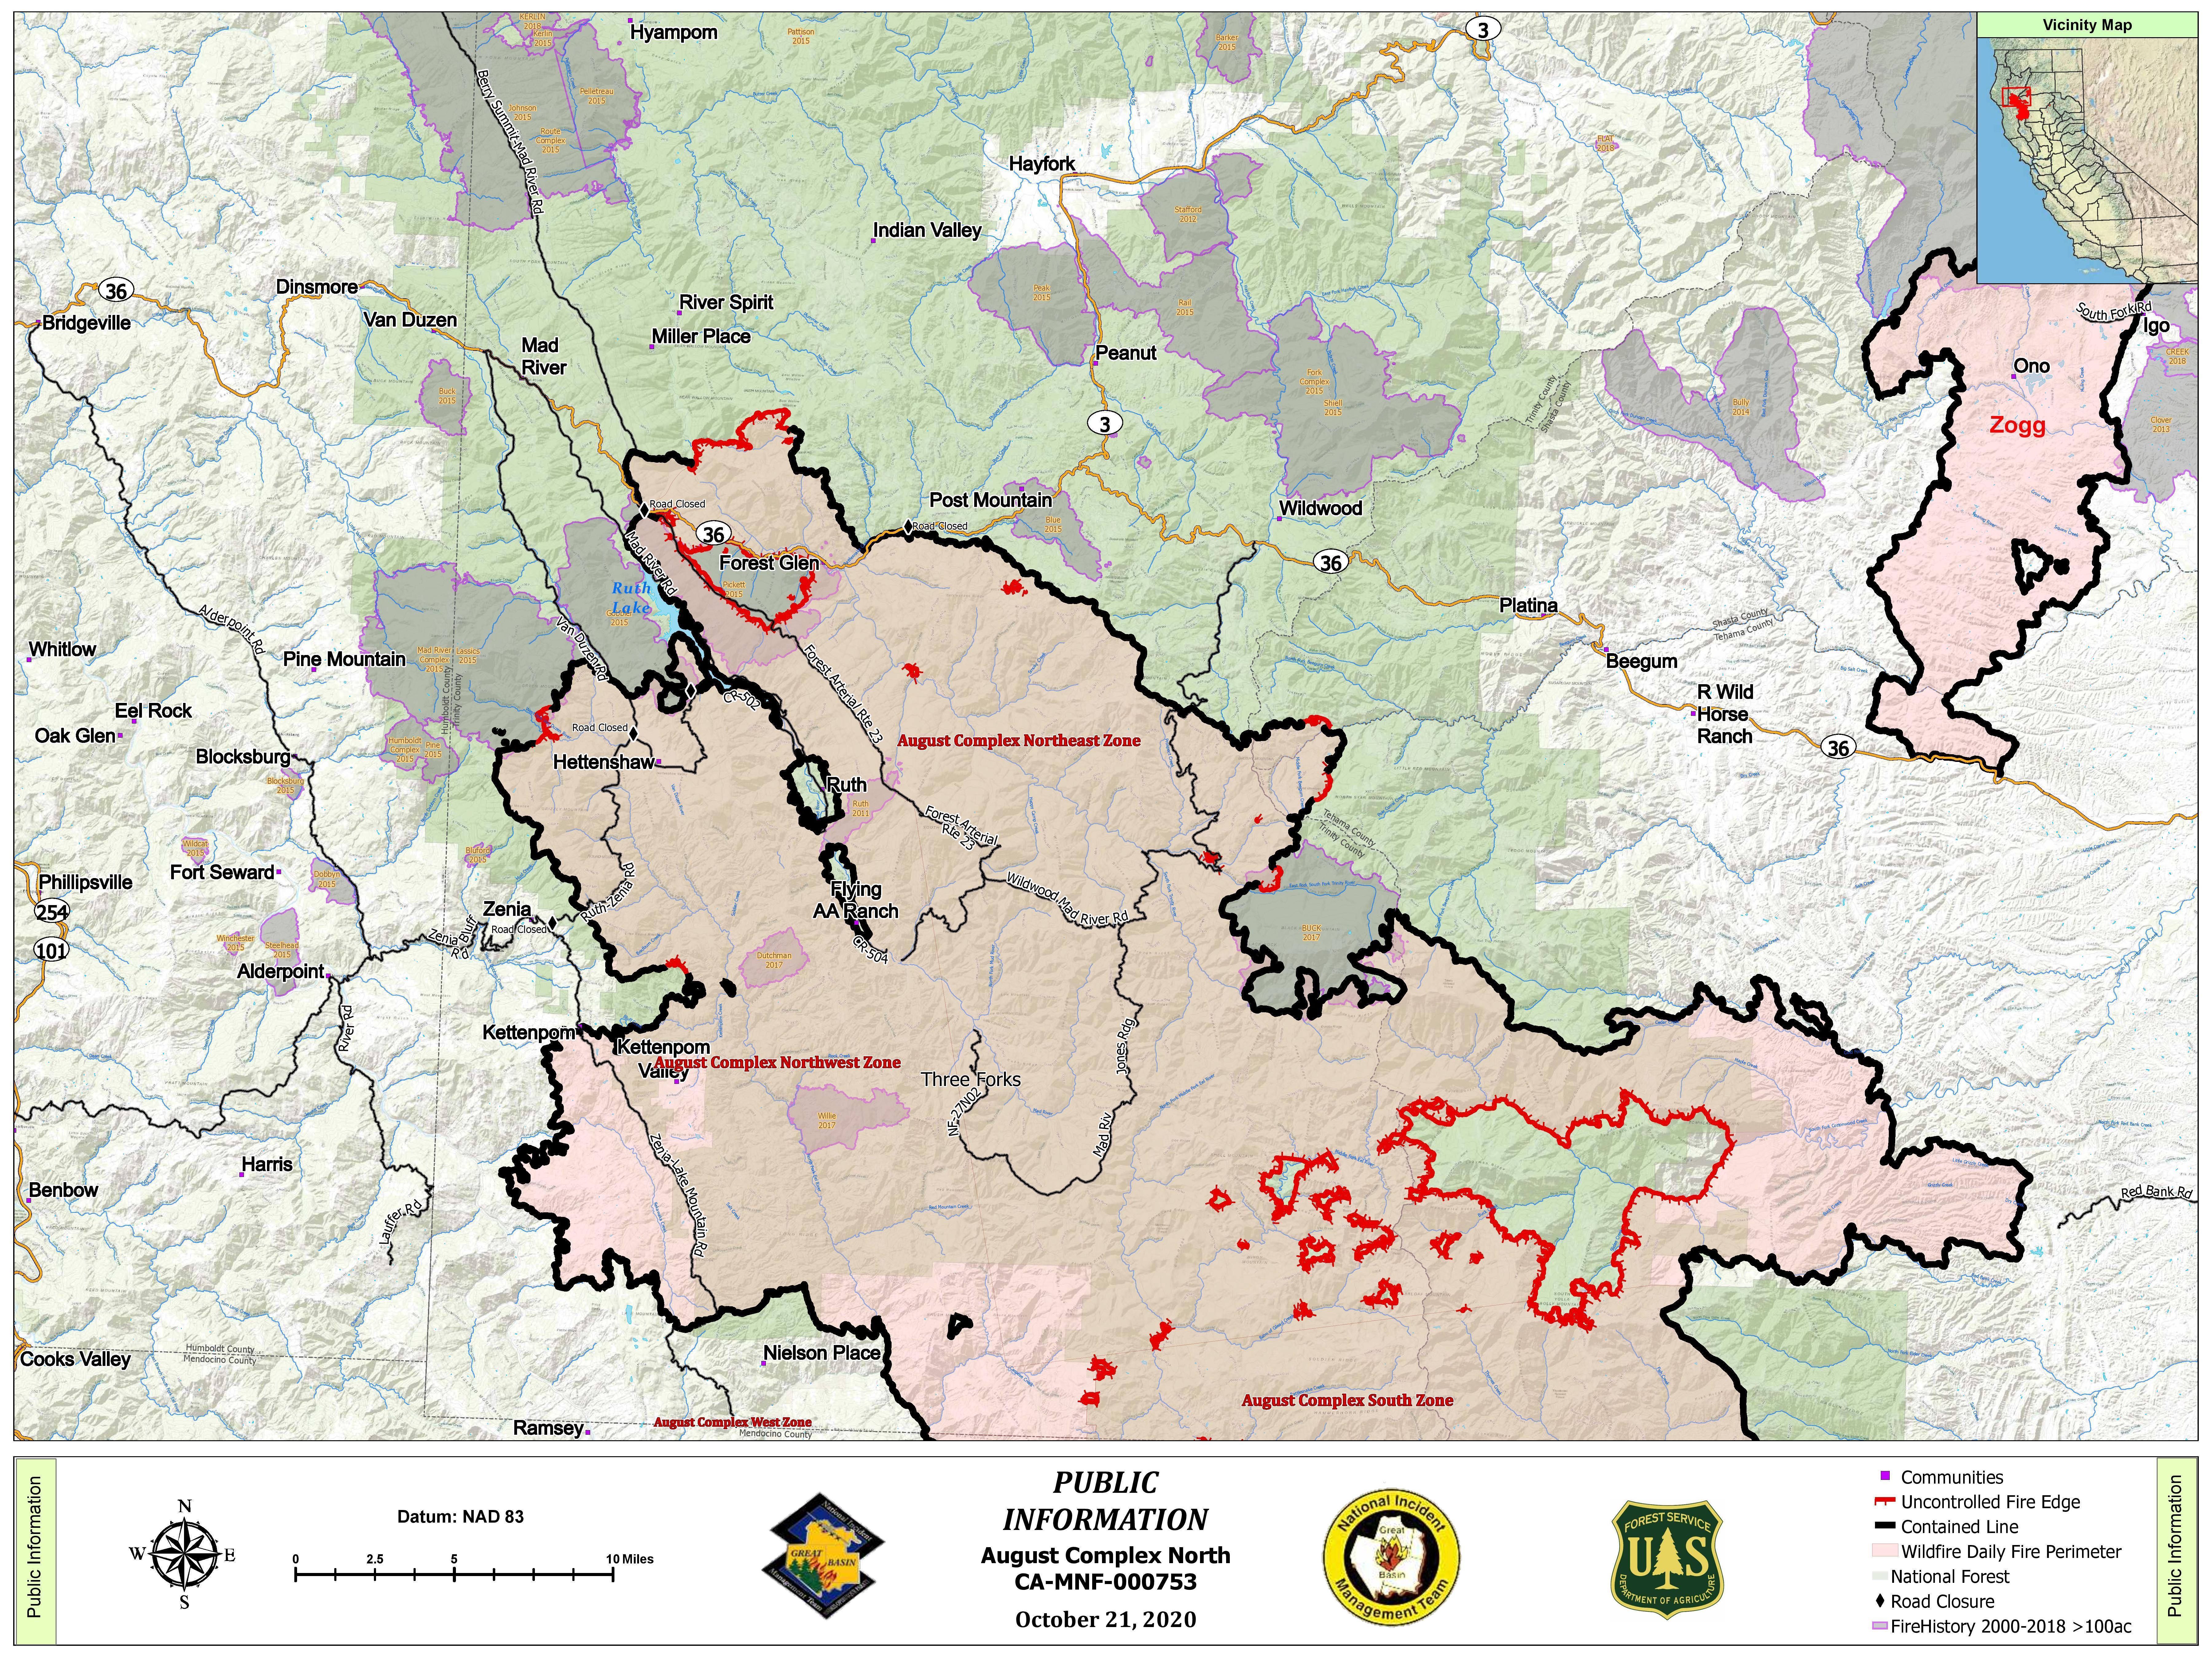 North Fire Perimter Map with uncontained perimeter line showing in red